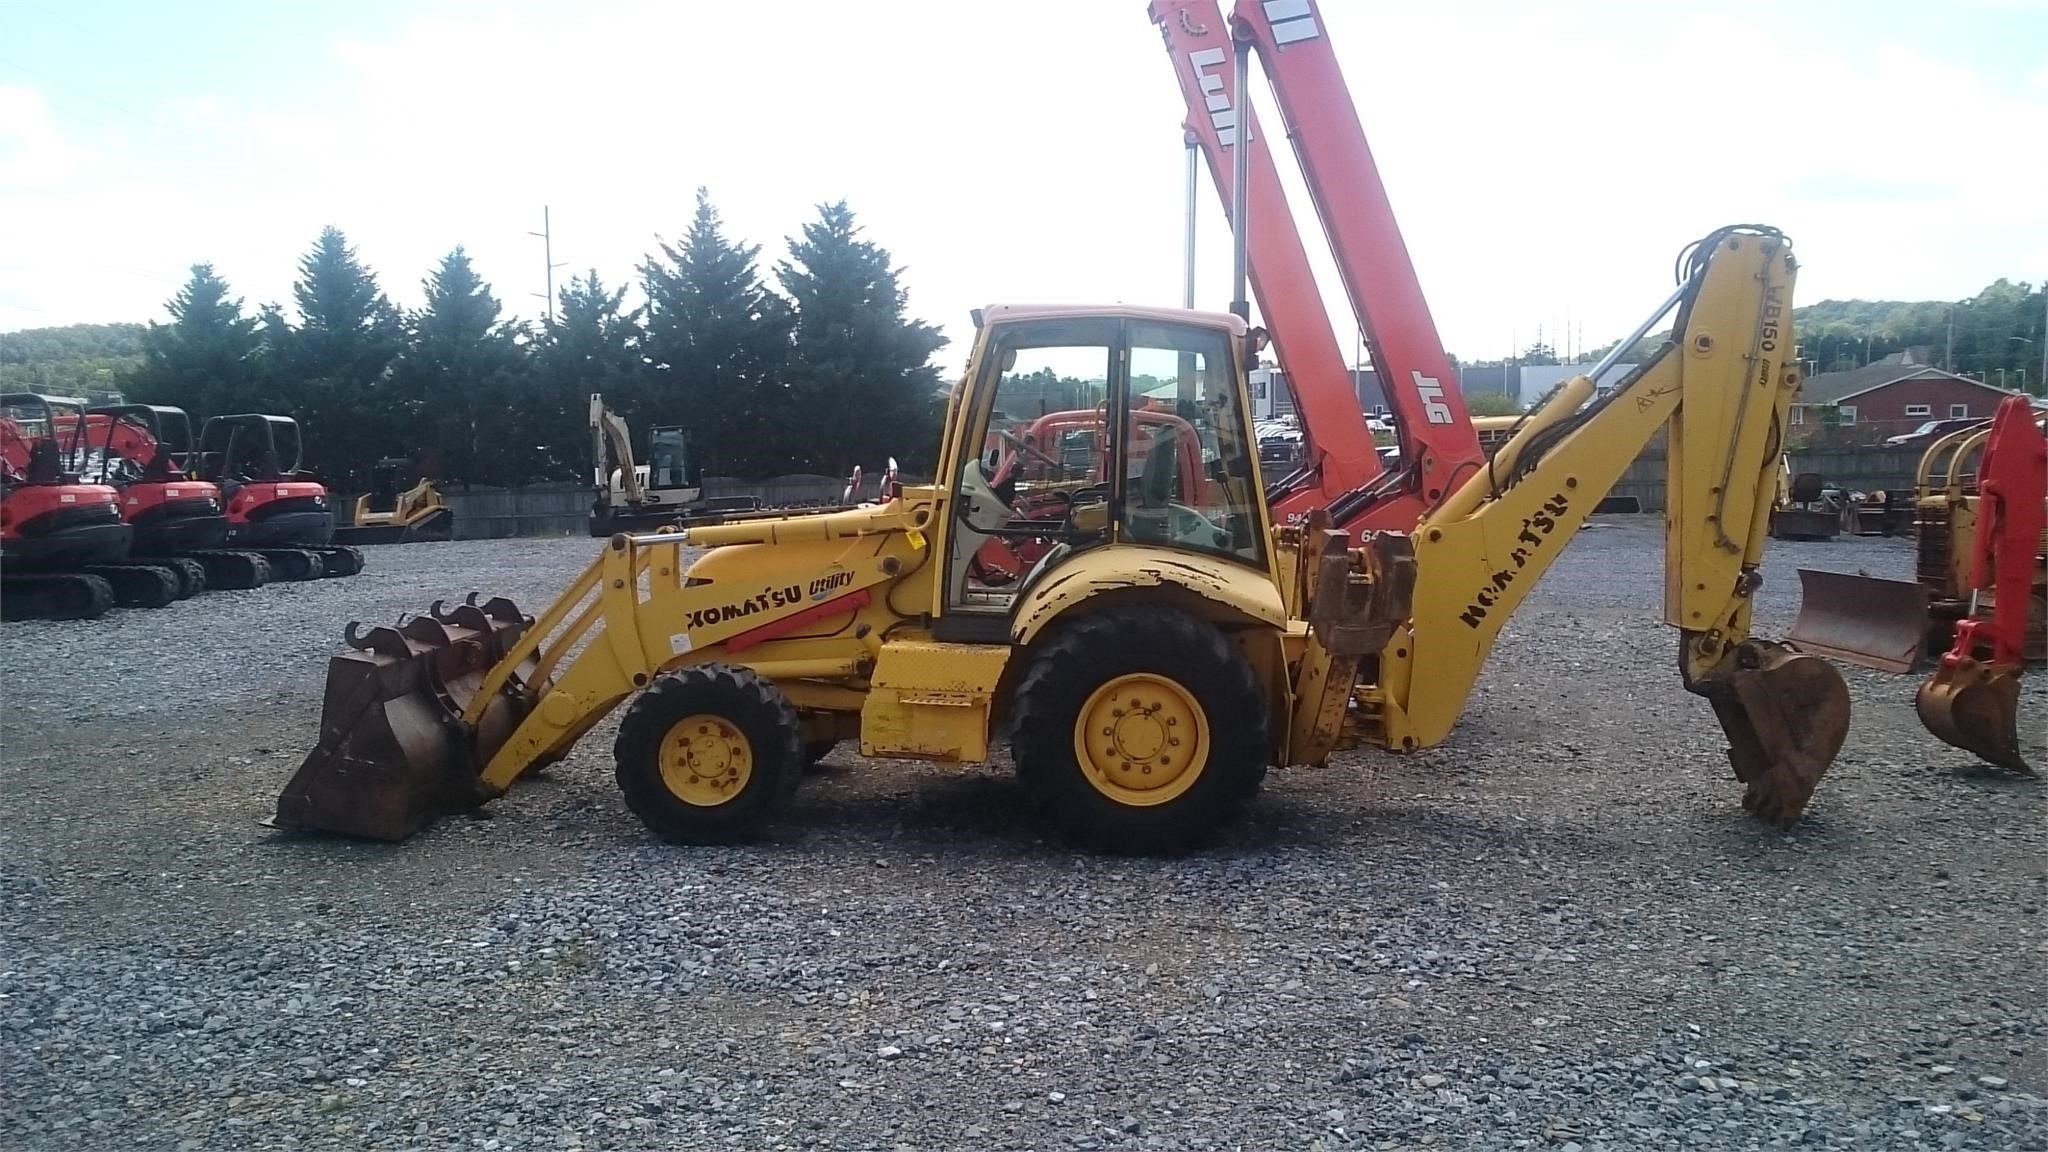 2003 KOMATSU WB150-2 ONE OWNER ENCLOSED CAB 4 WHEEL DRIVE EXTENDAHOE 2 STICK CONTROLS JOHN DEE